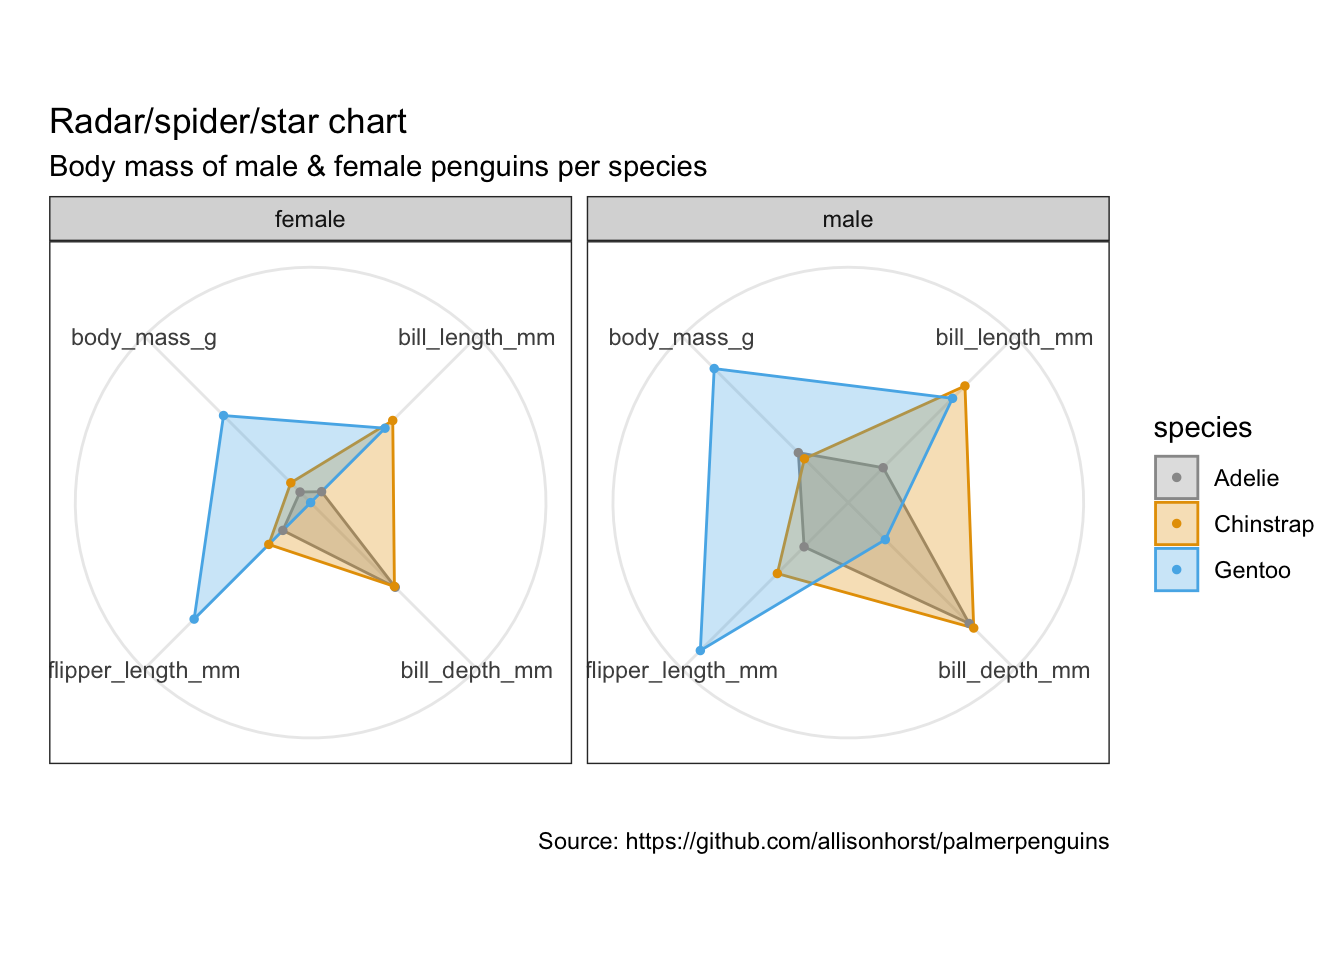 A radar chart of comparing male and female features of penguins